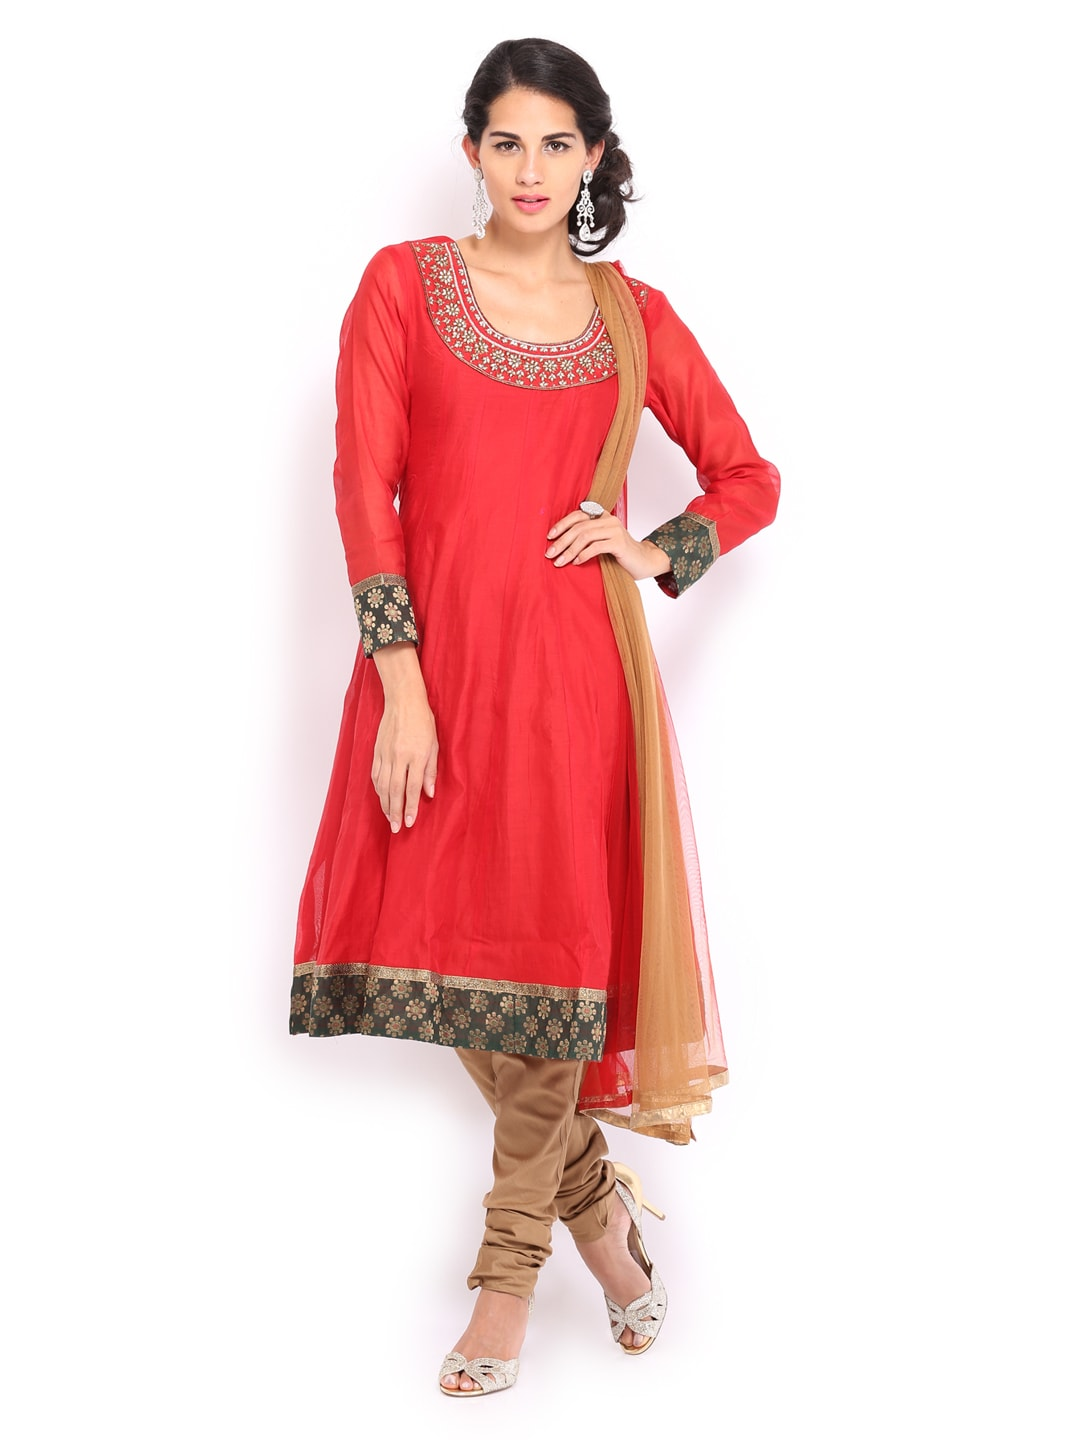 SPANDANA Women Red & Beige Anarkali Churidar Kurta with Dupatta (beige\/sand\/tan)